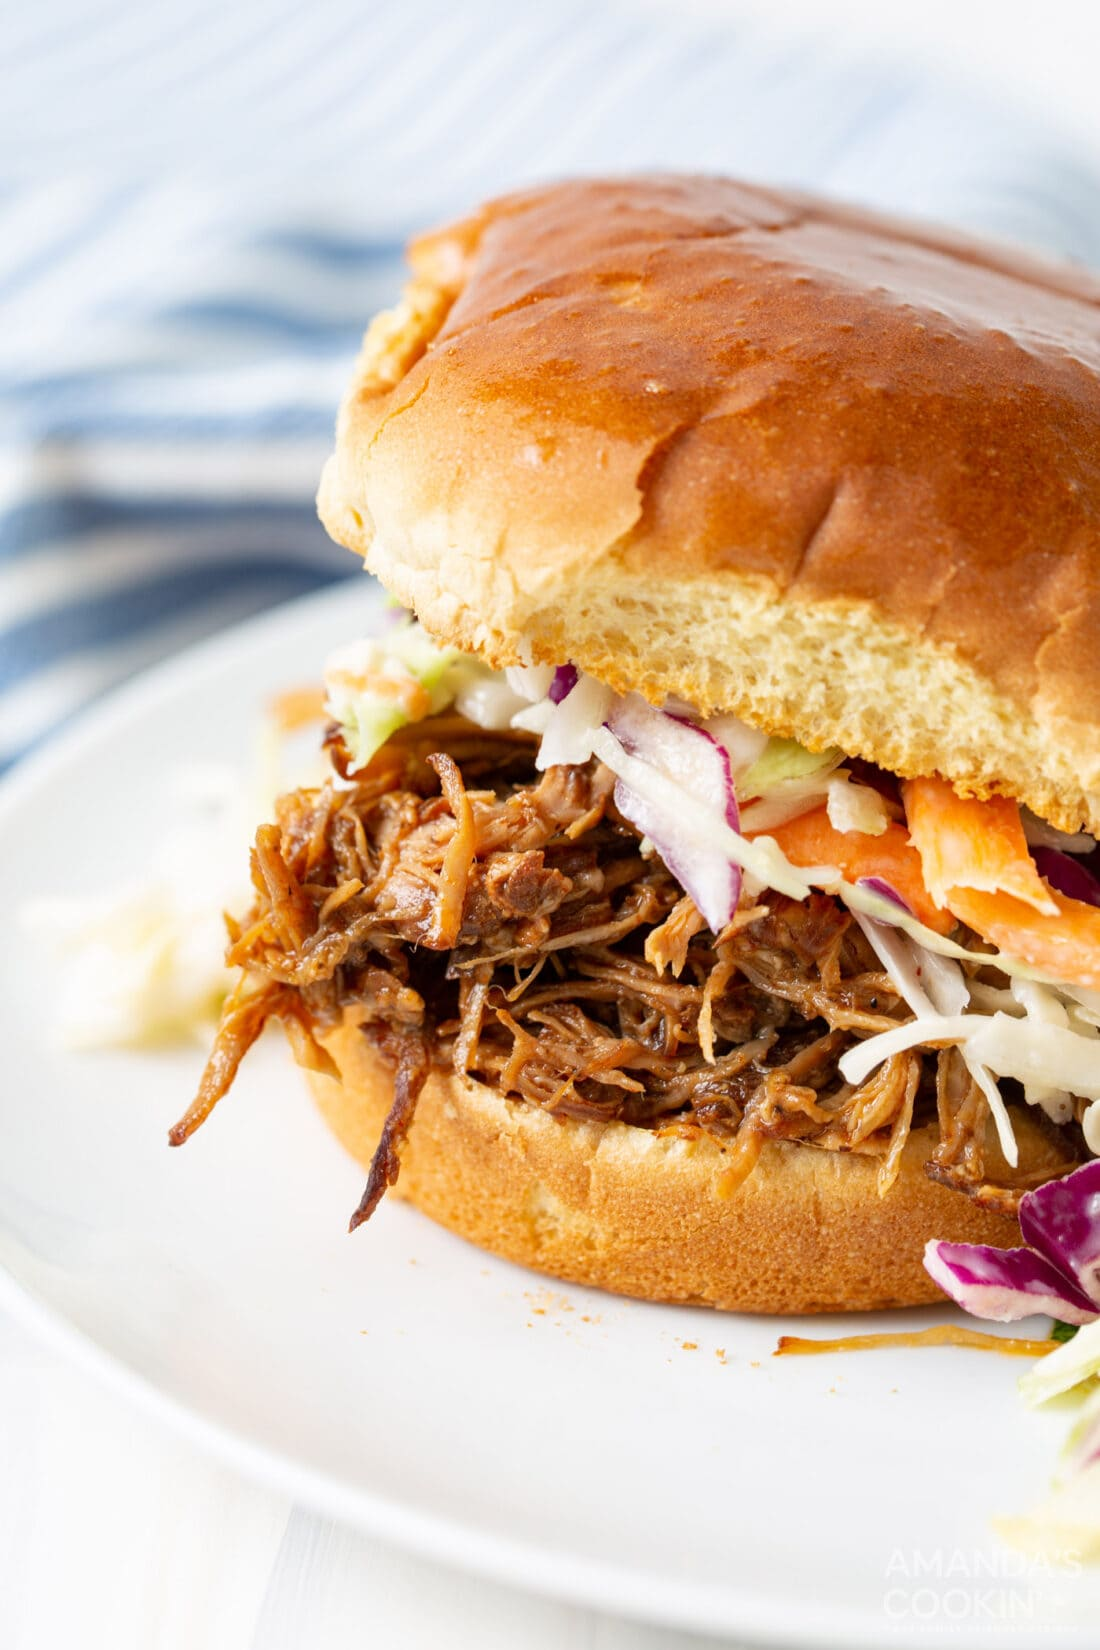 Instant Pot Pulled Pork sandwich with coleslaw